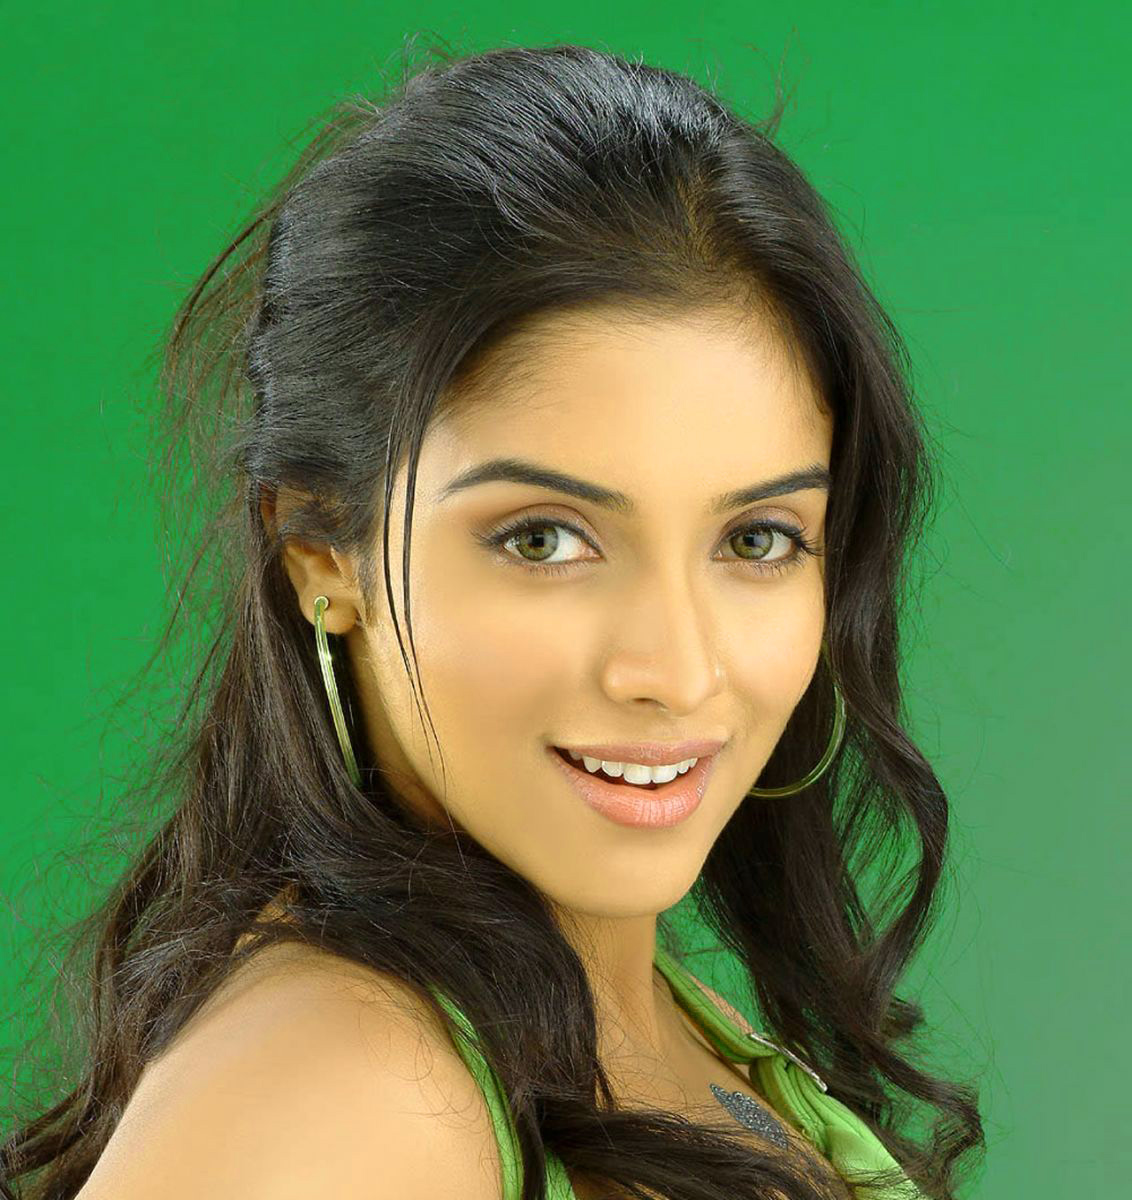 Asin images Wallpaper for Facebook